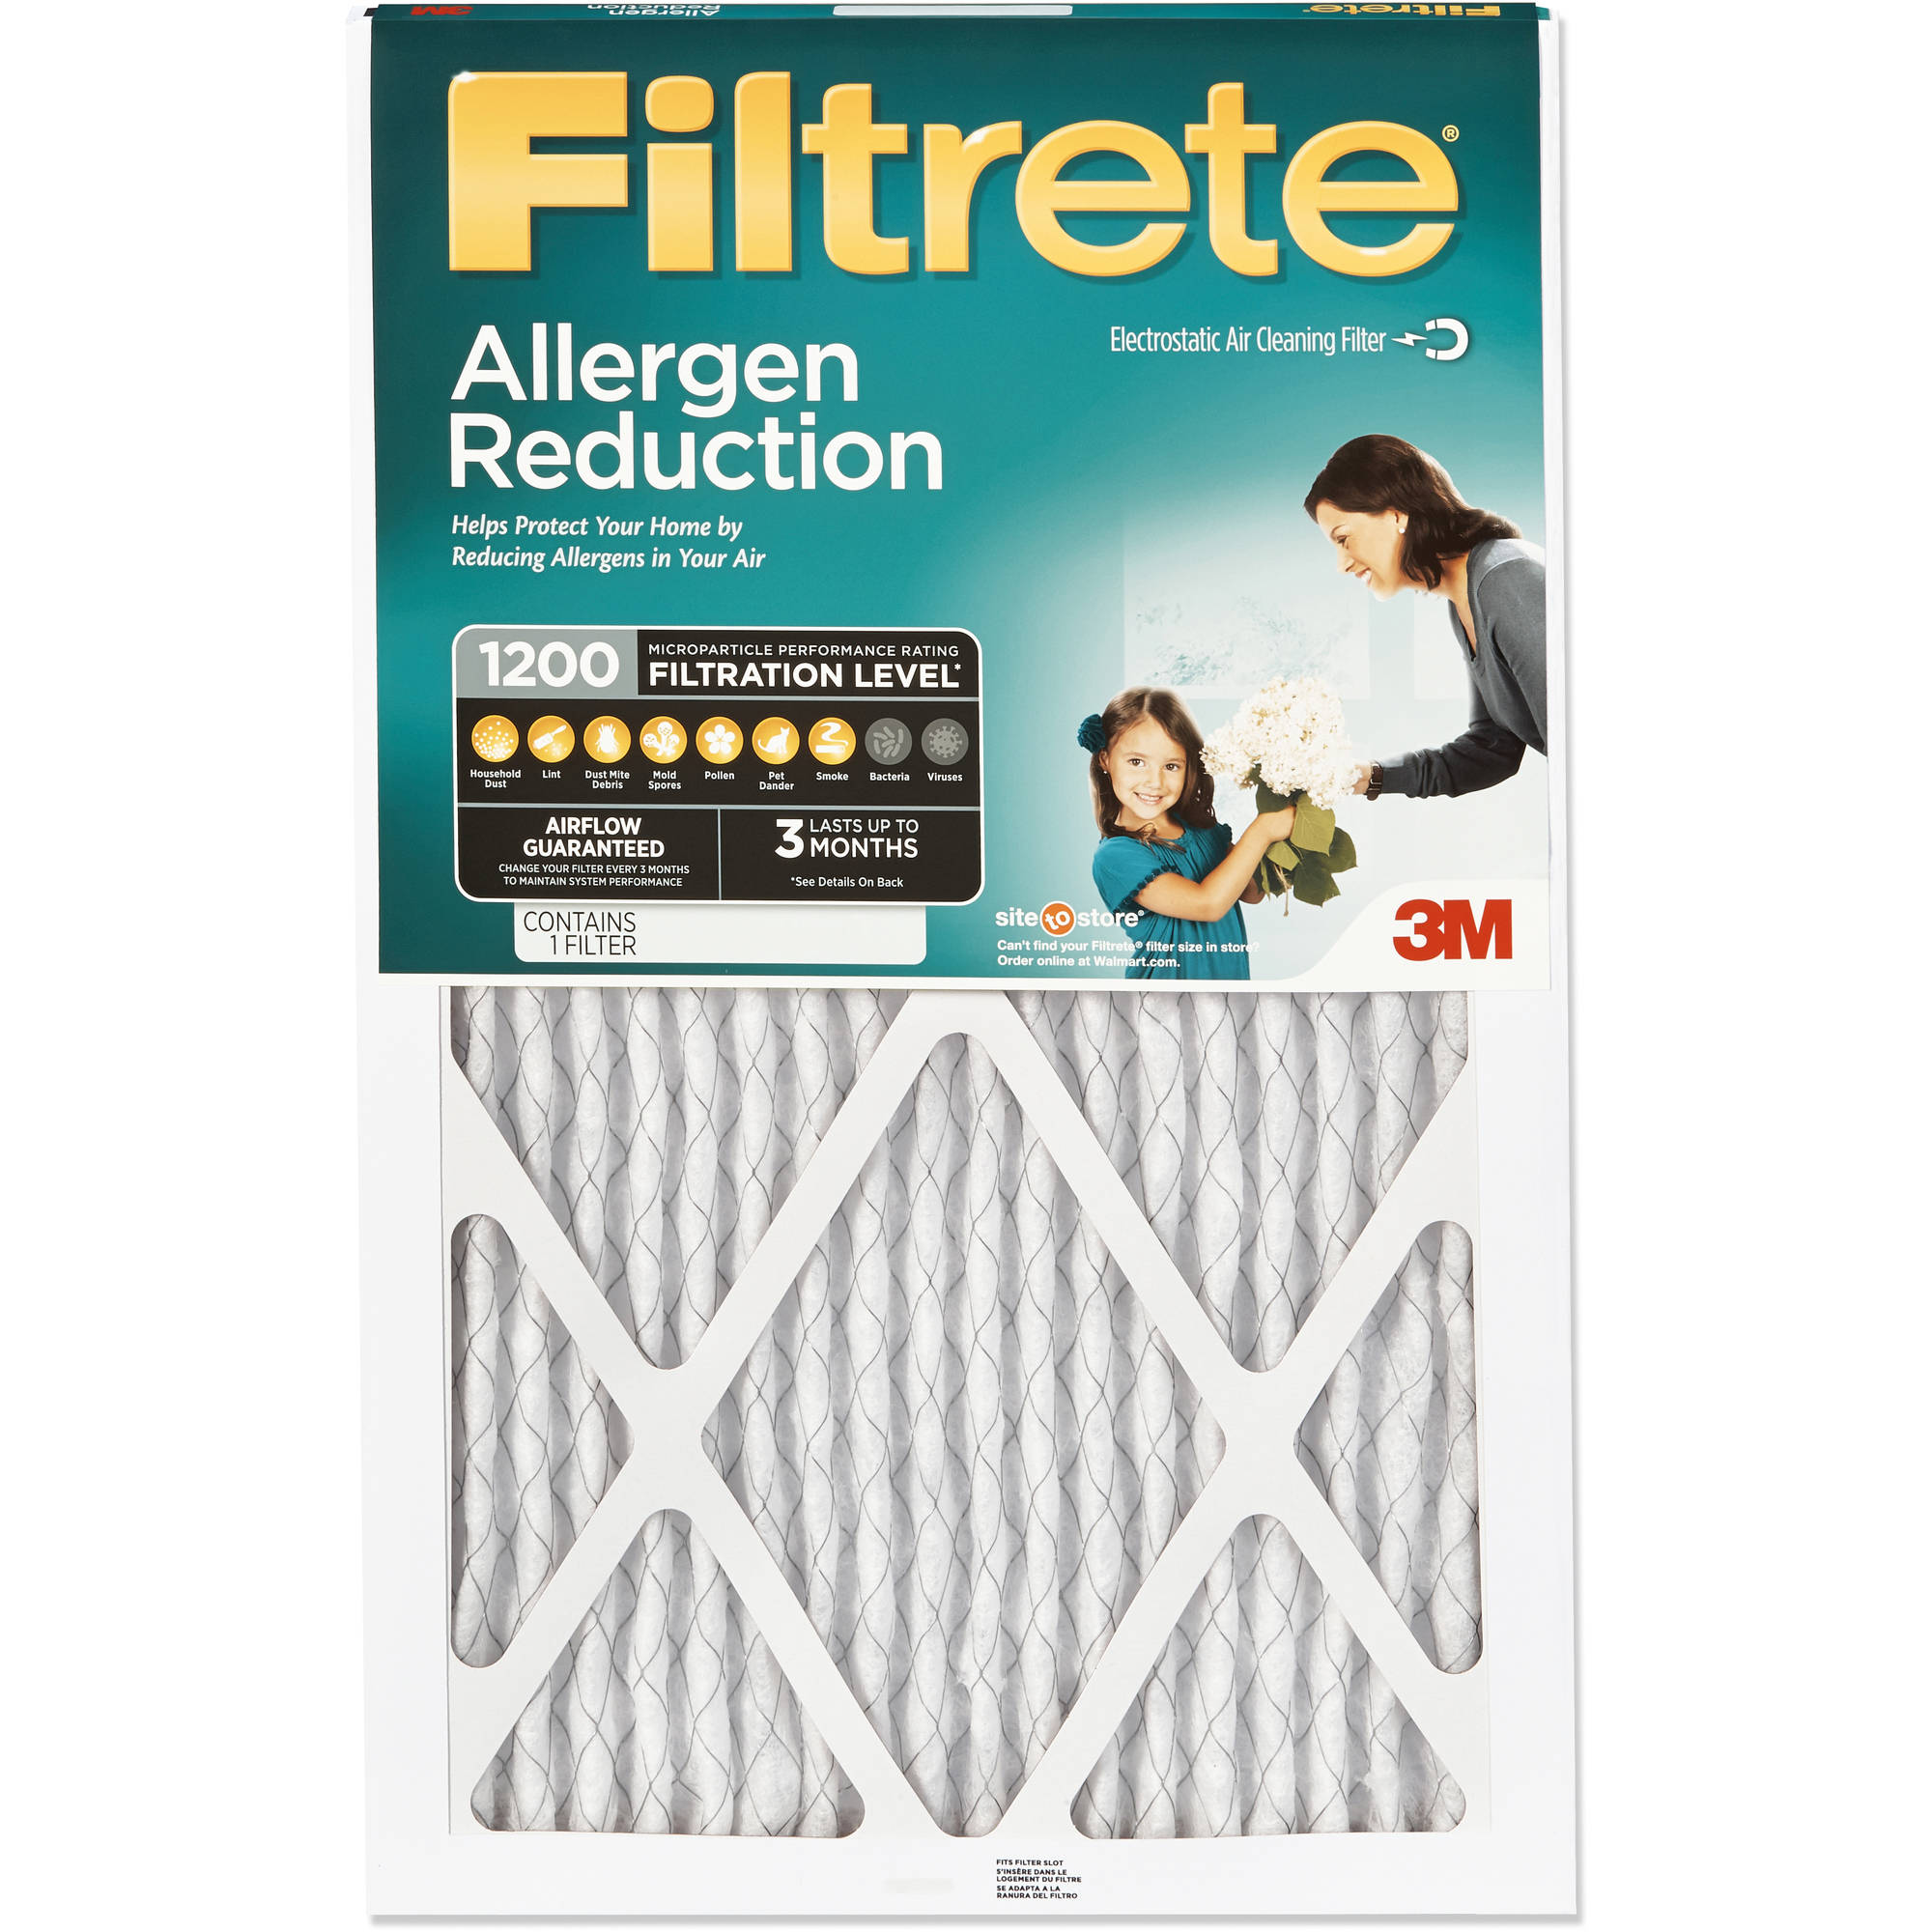 Filtrete Allergen Reduction Air and Furnace Filter, 1200 MPR, Available in Multiple Sizes, 1pk